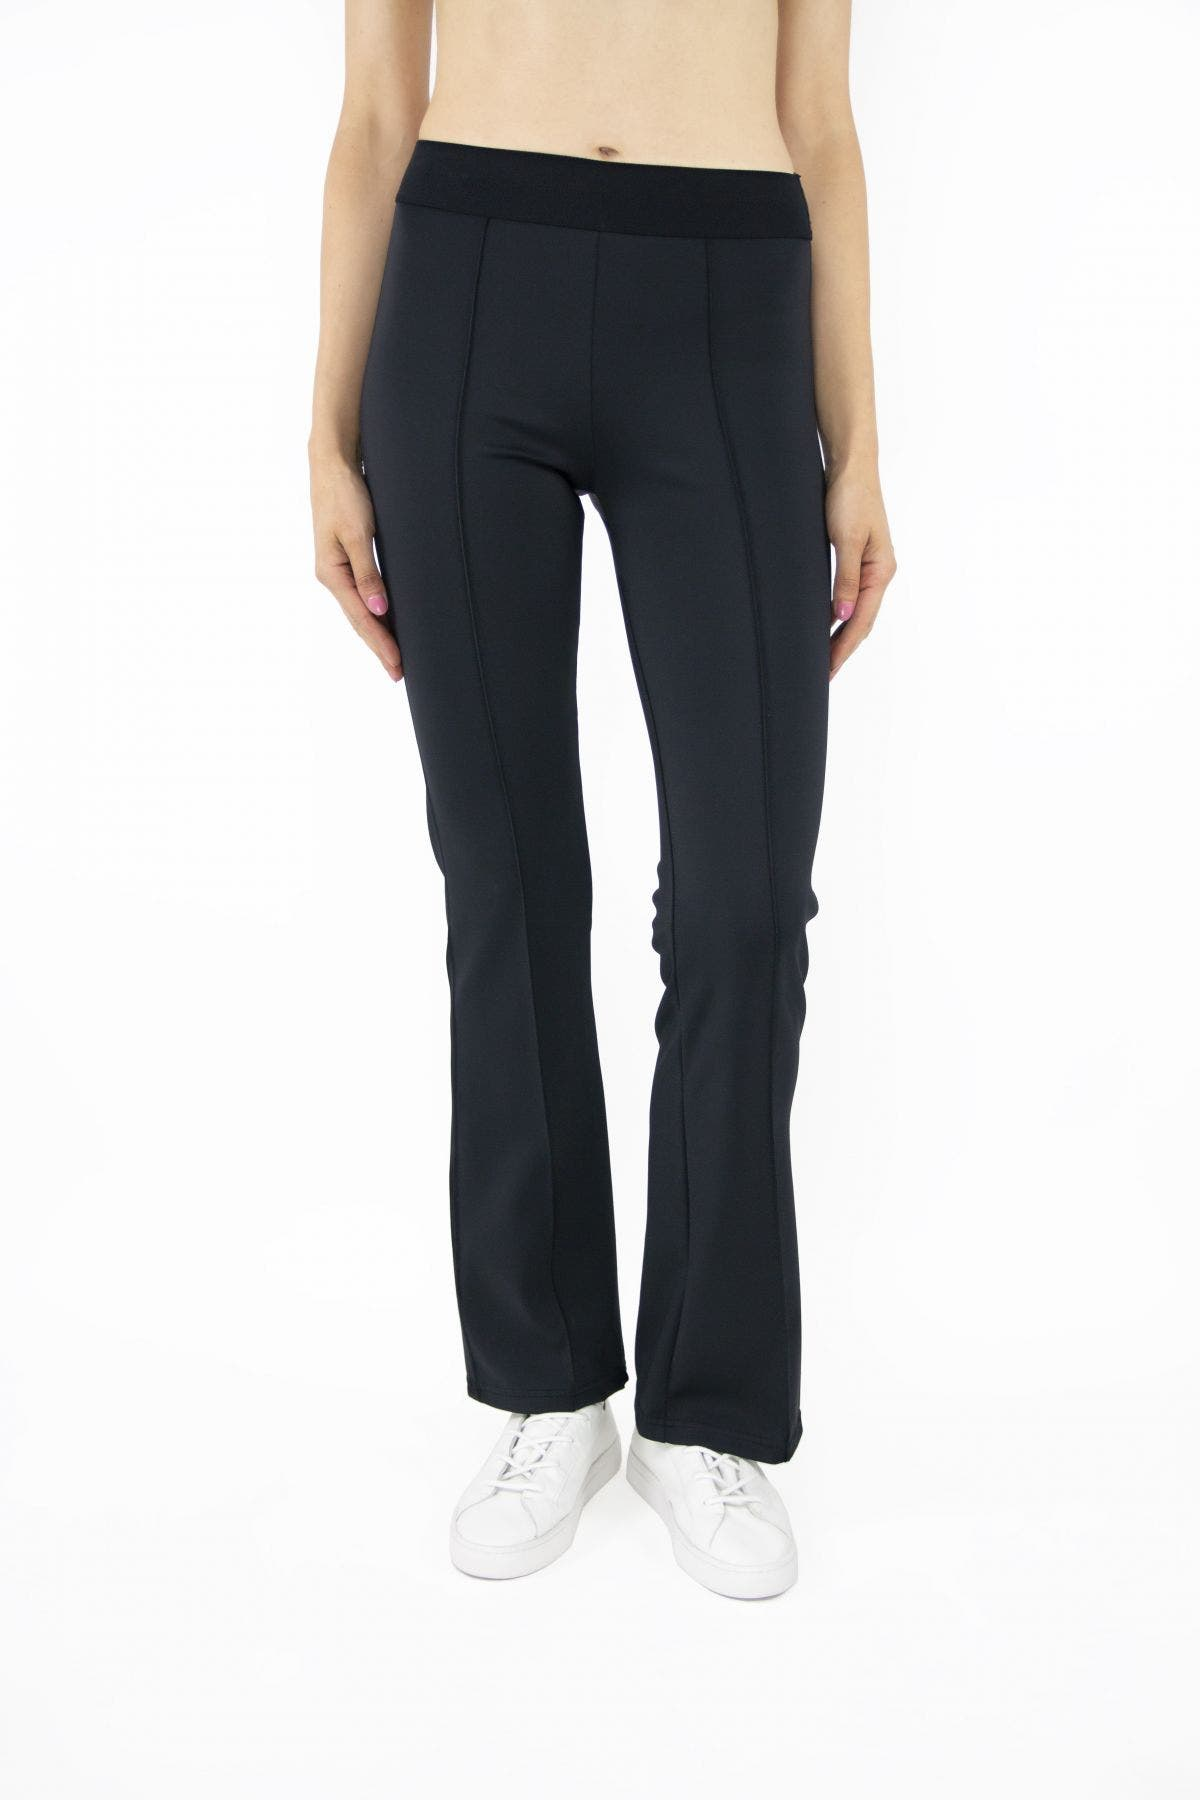 Tractr Jeans High Waist Performance Pant